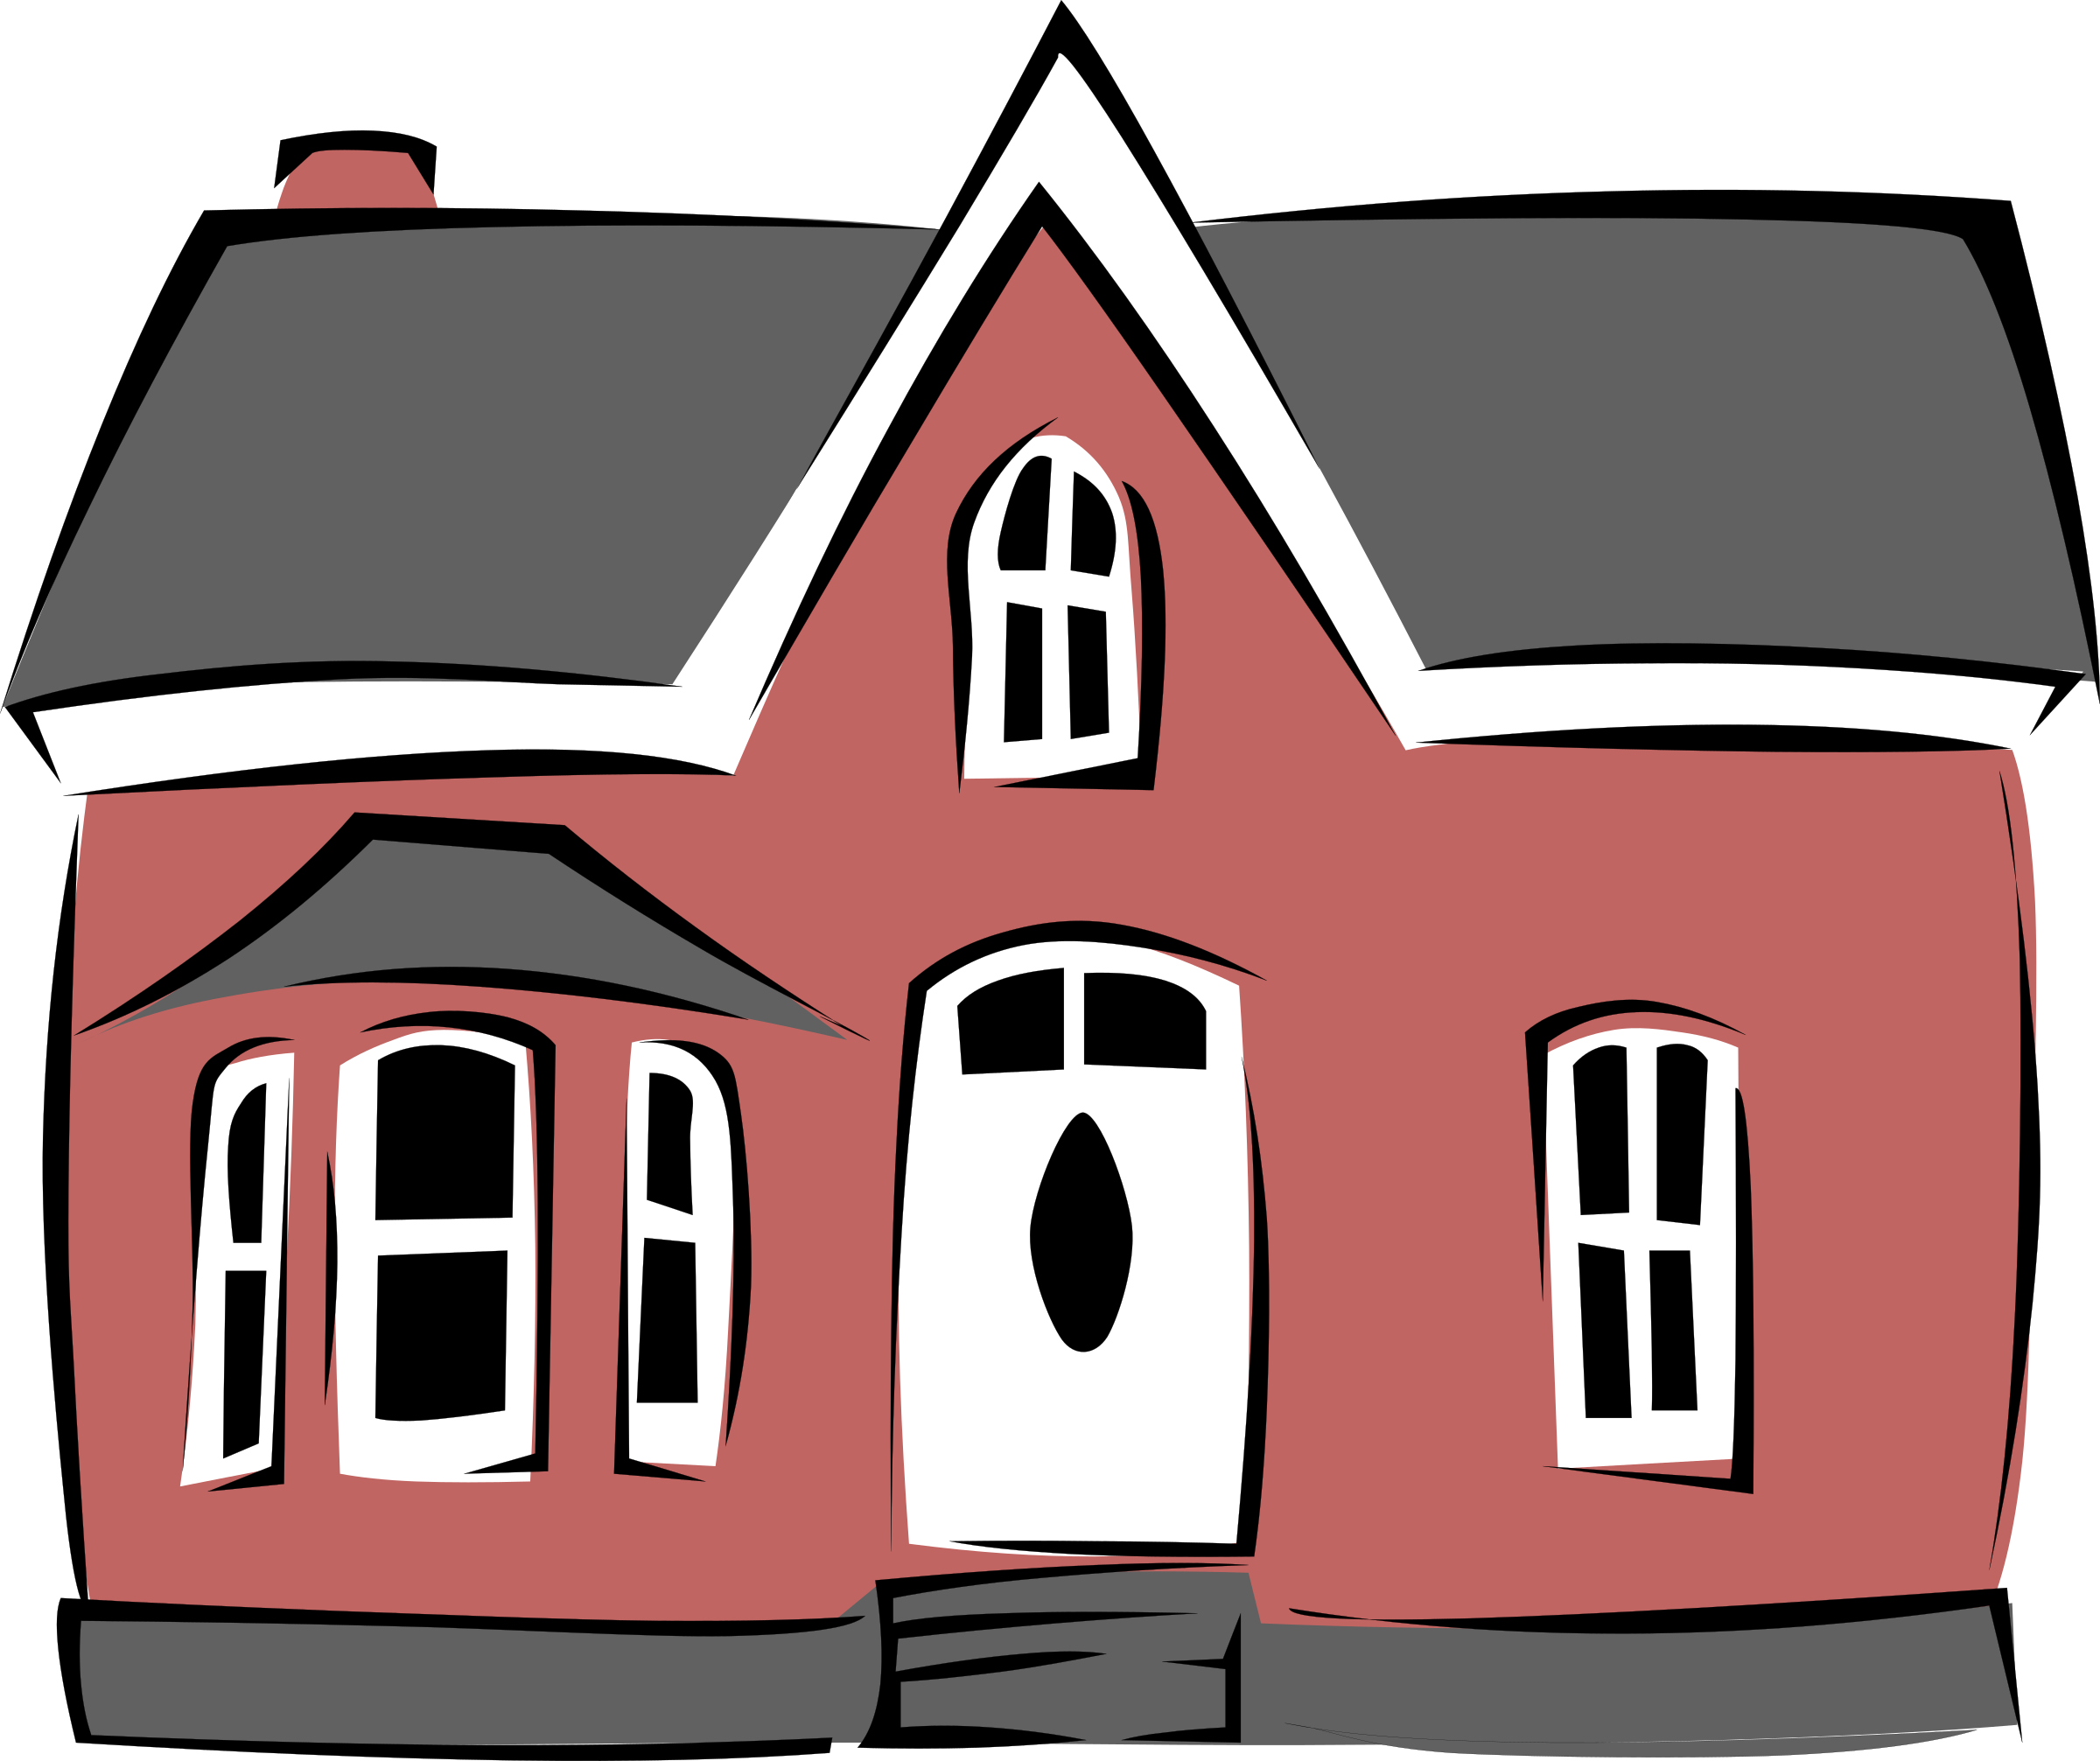 Clipart house building svg transparent library Clipart - Small House svg transparent library